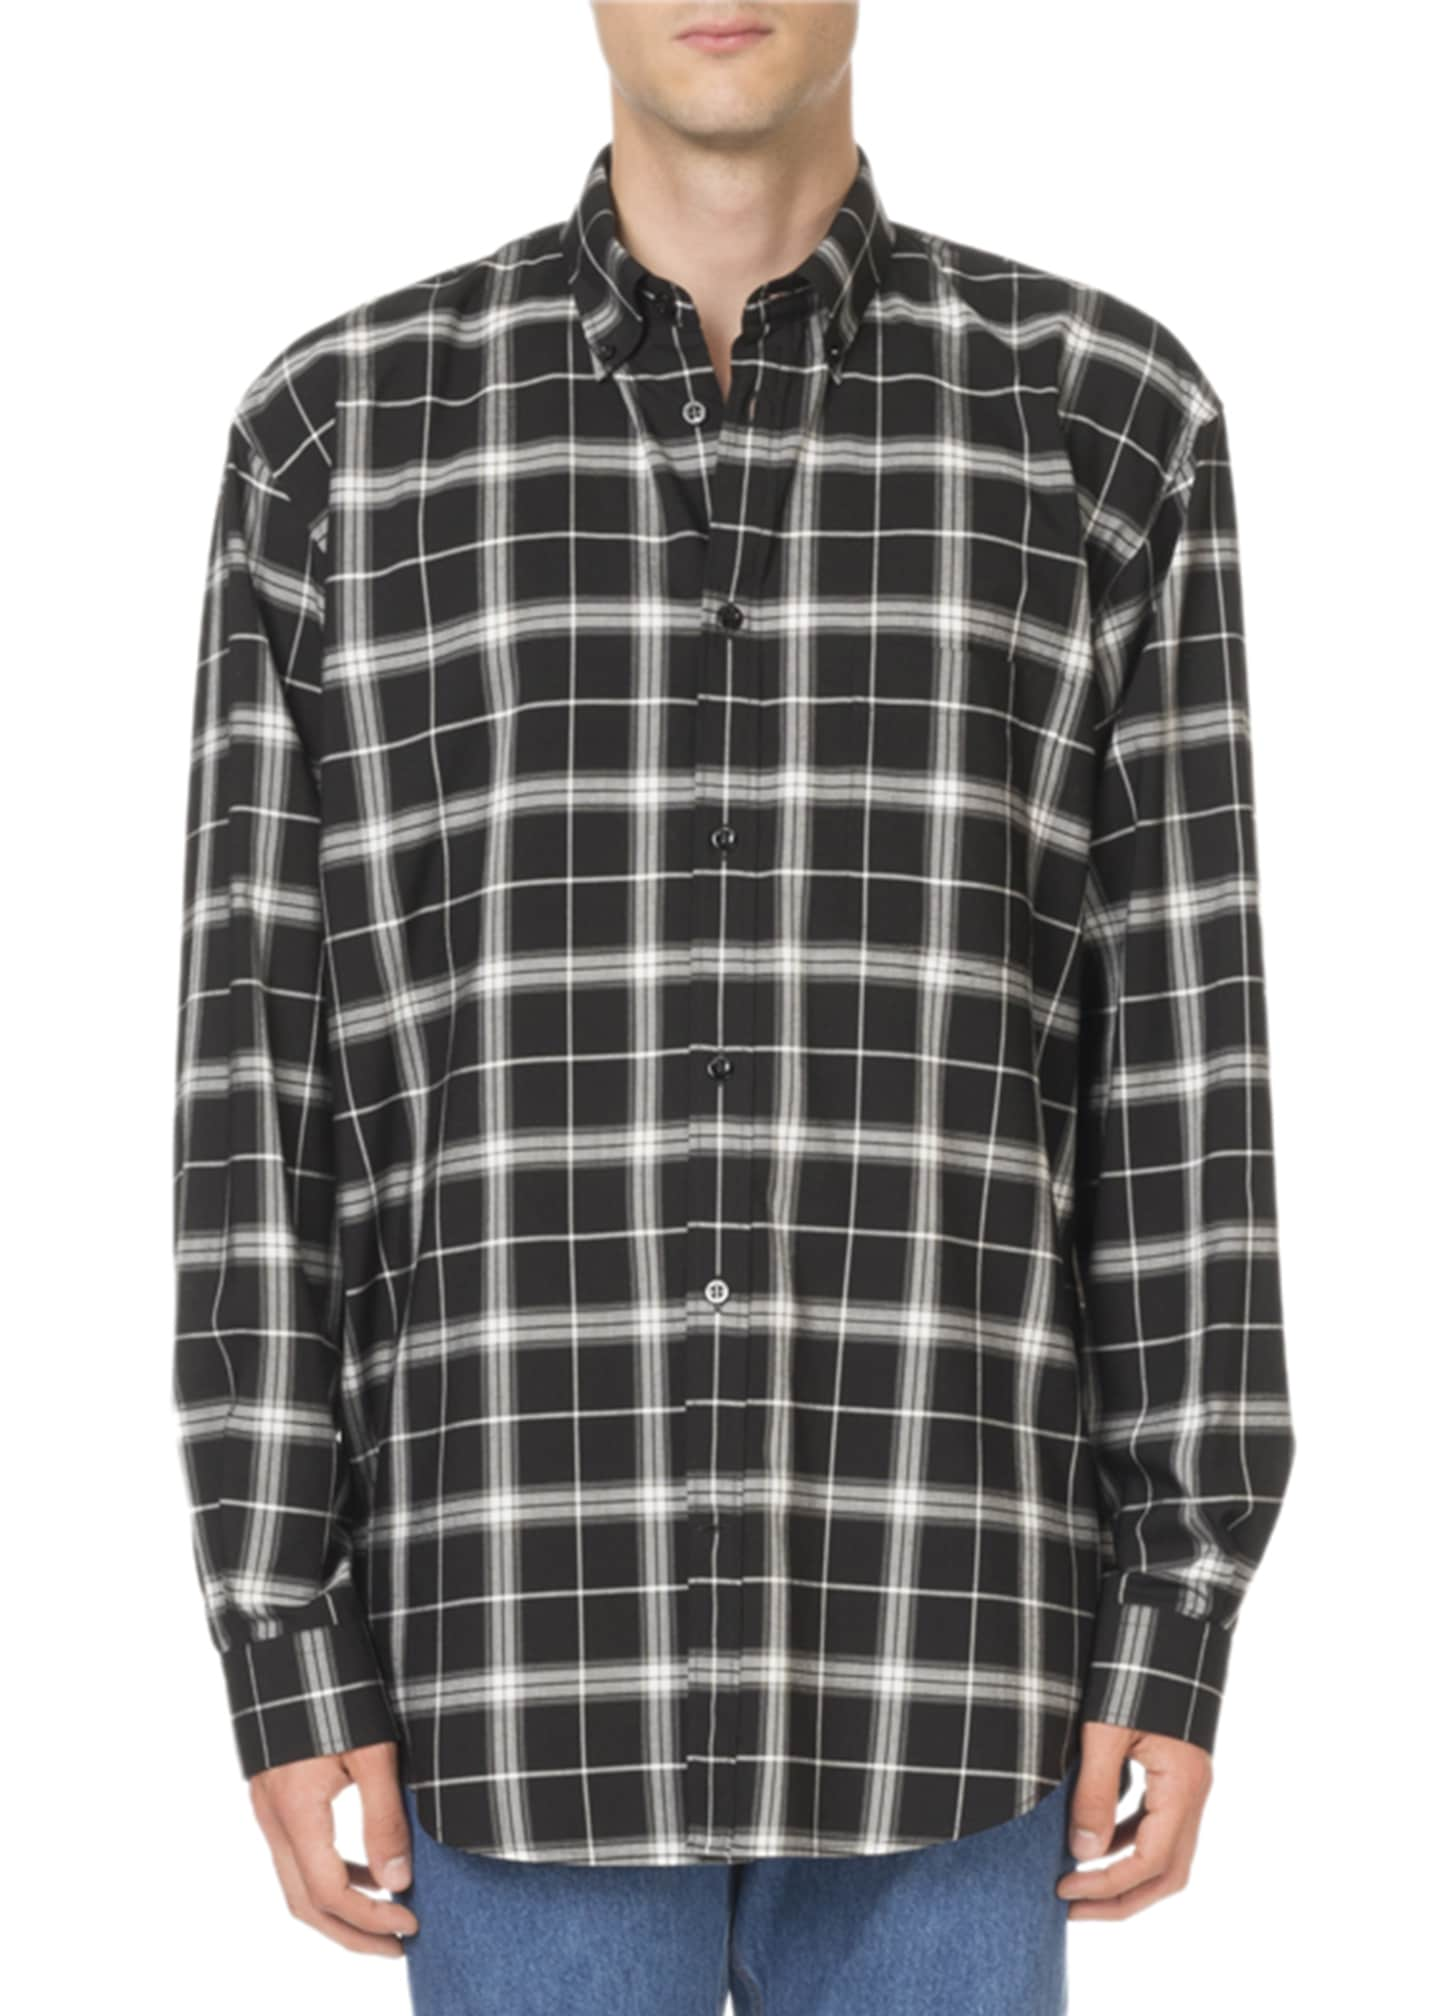 Balenciaga Men's Plaid Sport Shirt